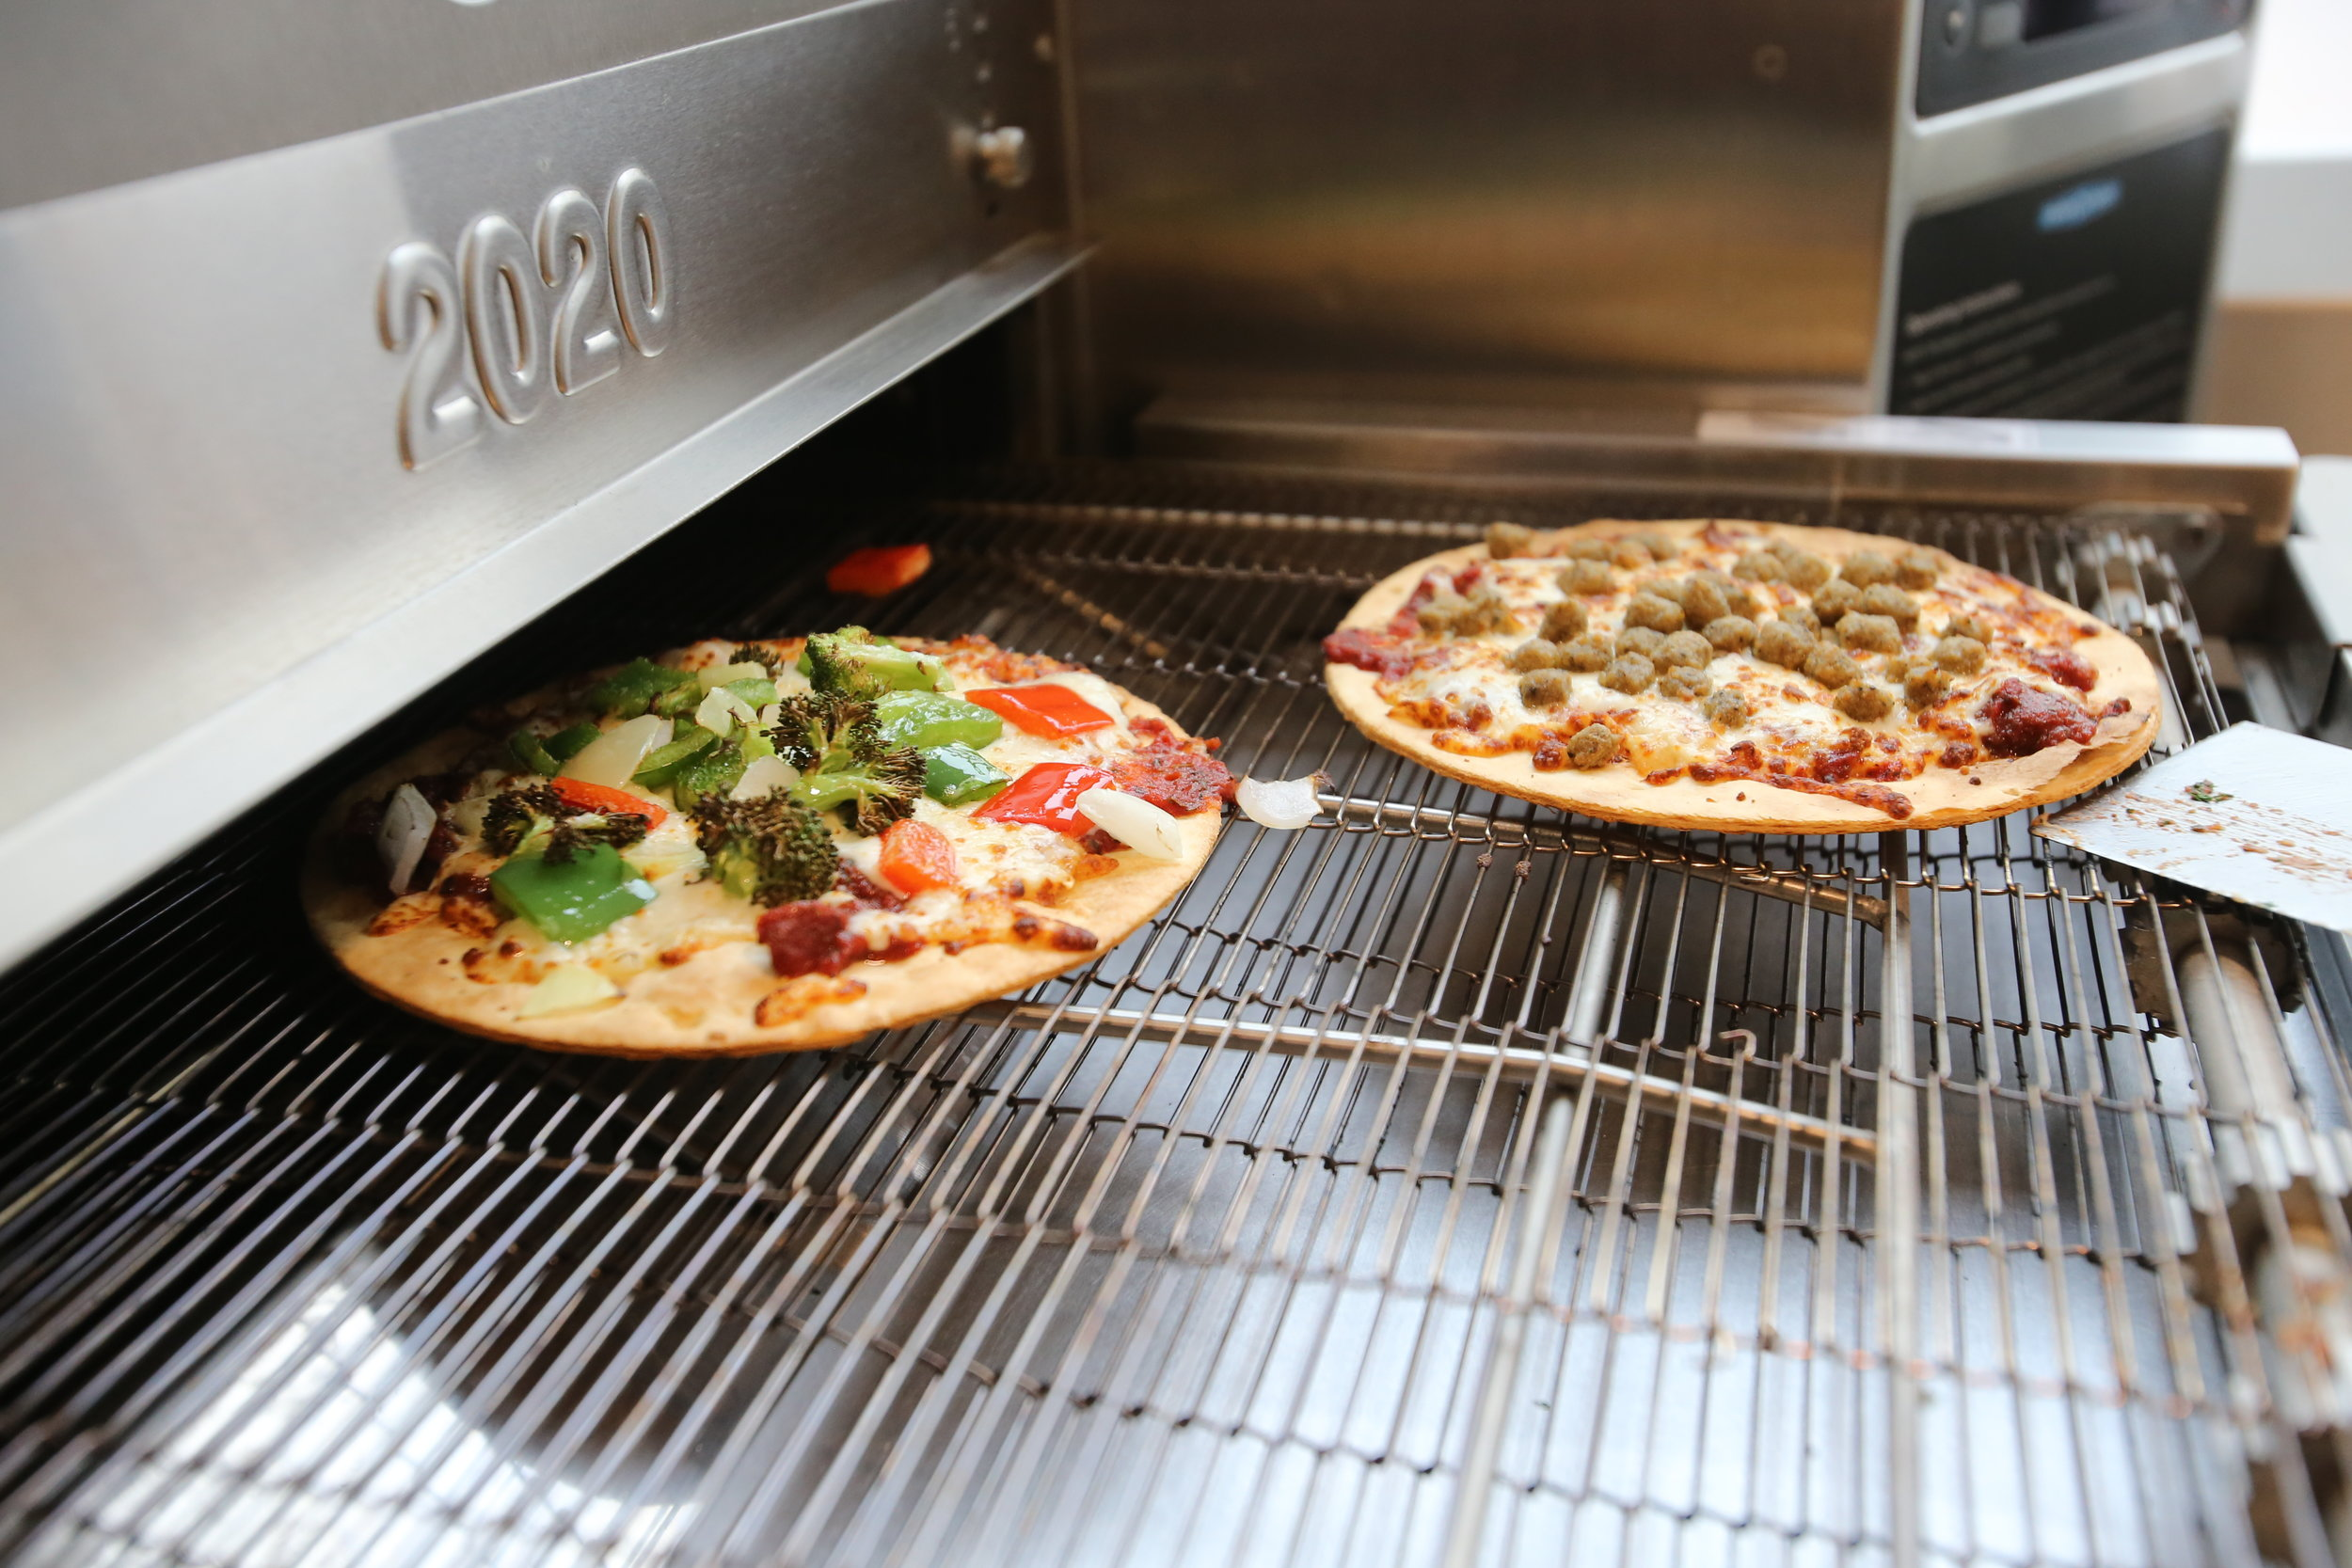 Crust - Pizza is not just a staple for consumers, it's a Chicagoland staple. With traditional hand-tossed favorites, gourmet thin crust options, gluten-free options, calzones, and everything in between – The Crust offers more than just pizza.